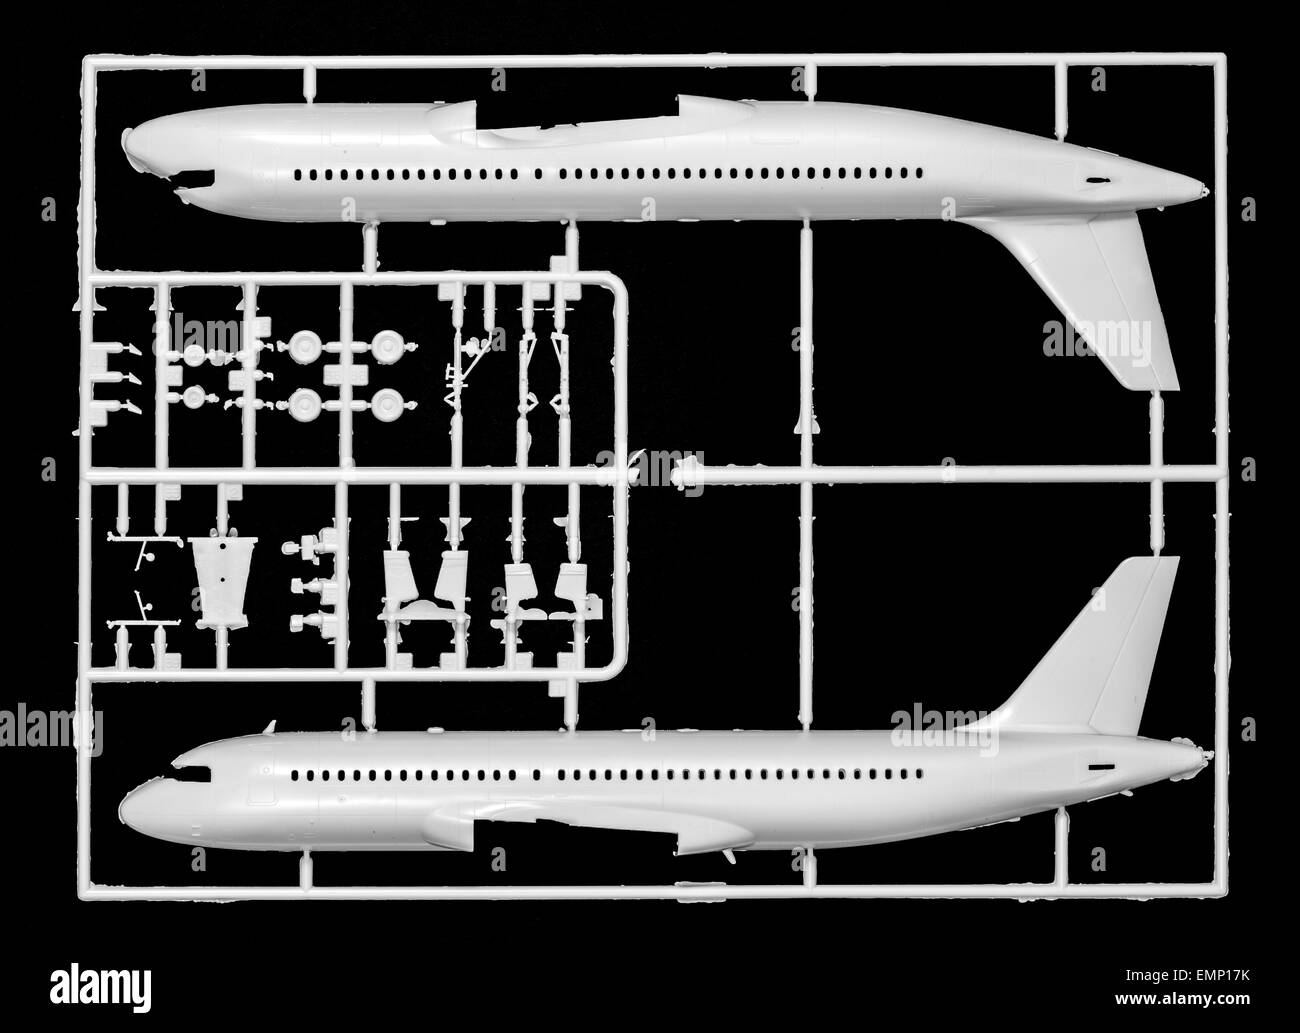 Symbolic image,  aerospace industry, aircraft, plastic model assembly kit, a passenger aircraft, Airbus A320 - Stock Image